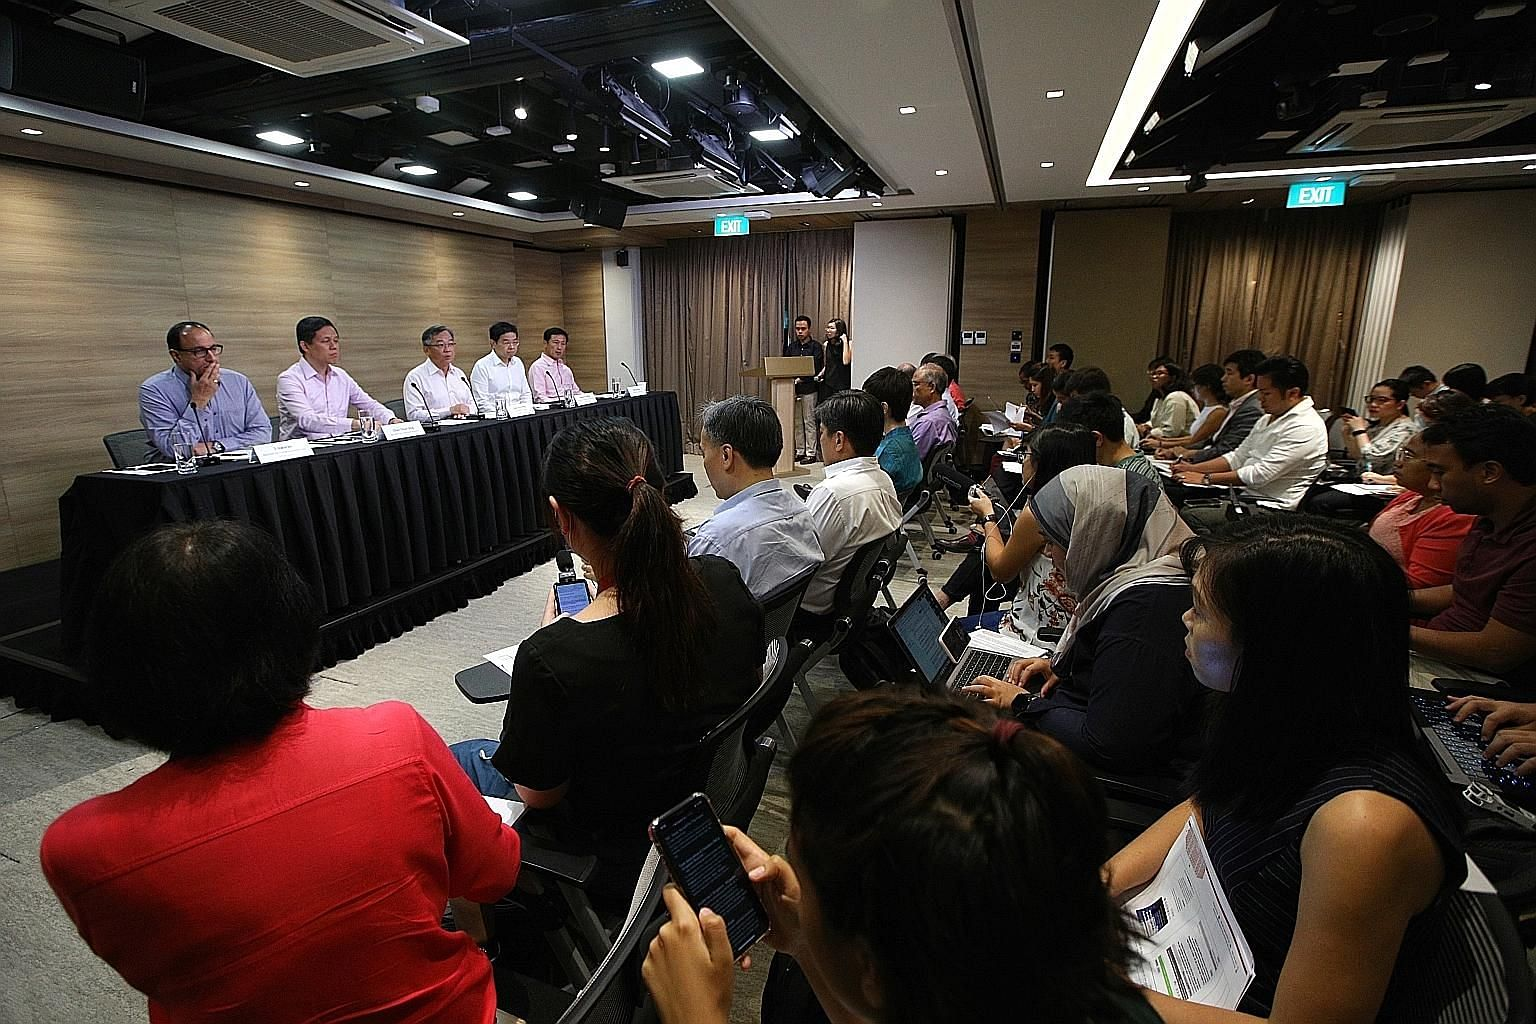 Singapore's multi-ministry task force tackling the coronavirus addressing a press conference on Jan 27. The Republic has managed to foster trust in its key institutions - the political leadership, public services and also the media - in large part be